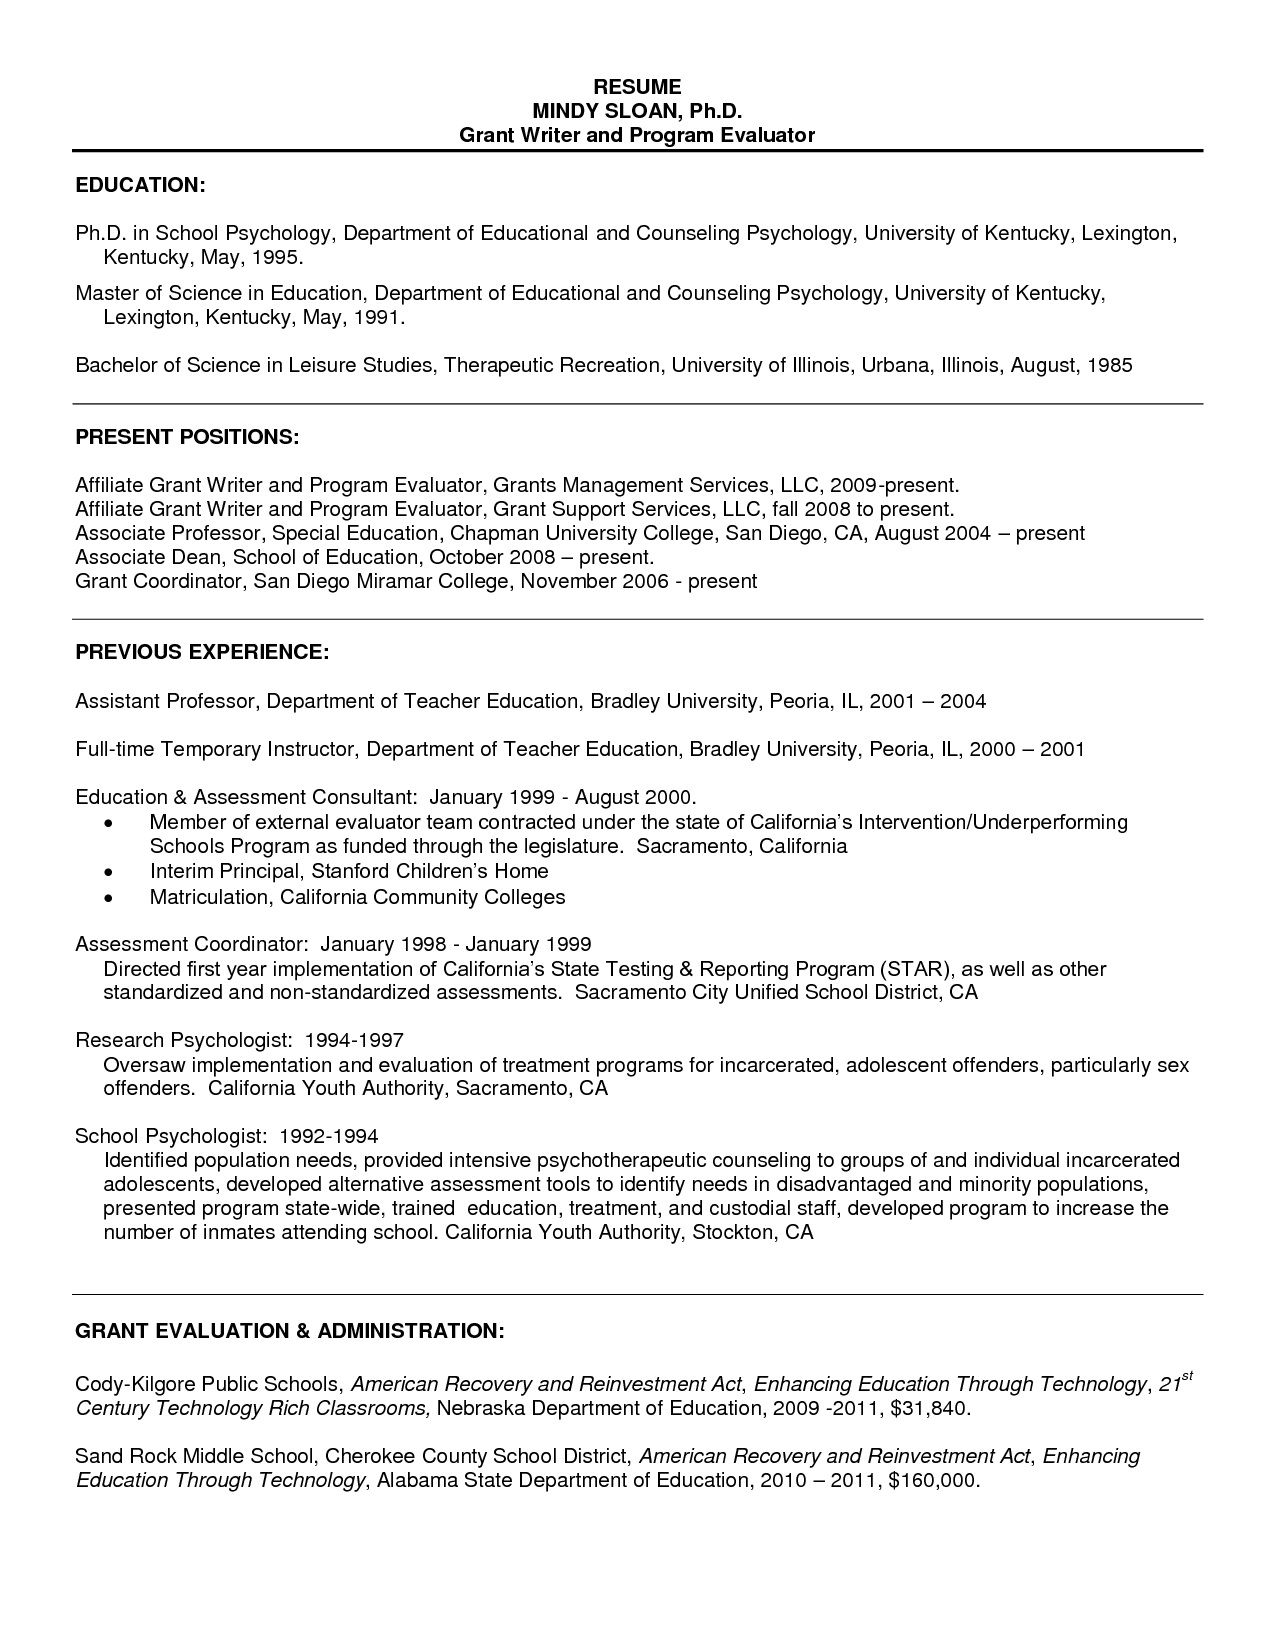 Resume Template Pinterest Sample Resume For Psychology Graduate Http